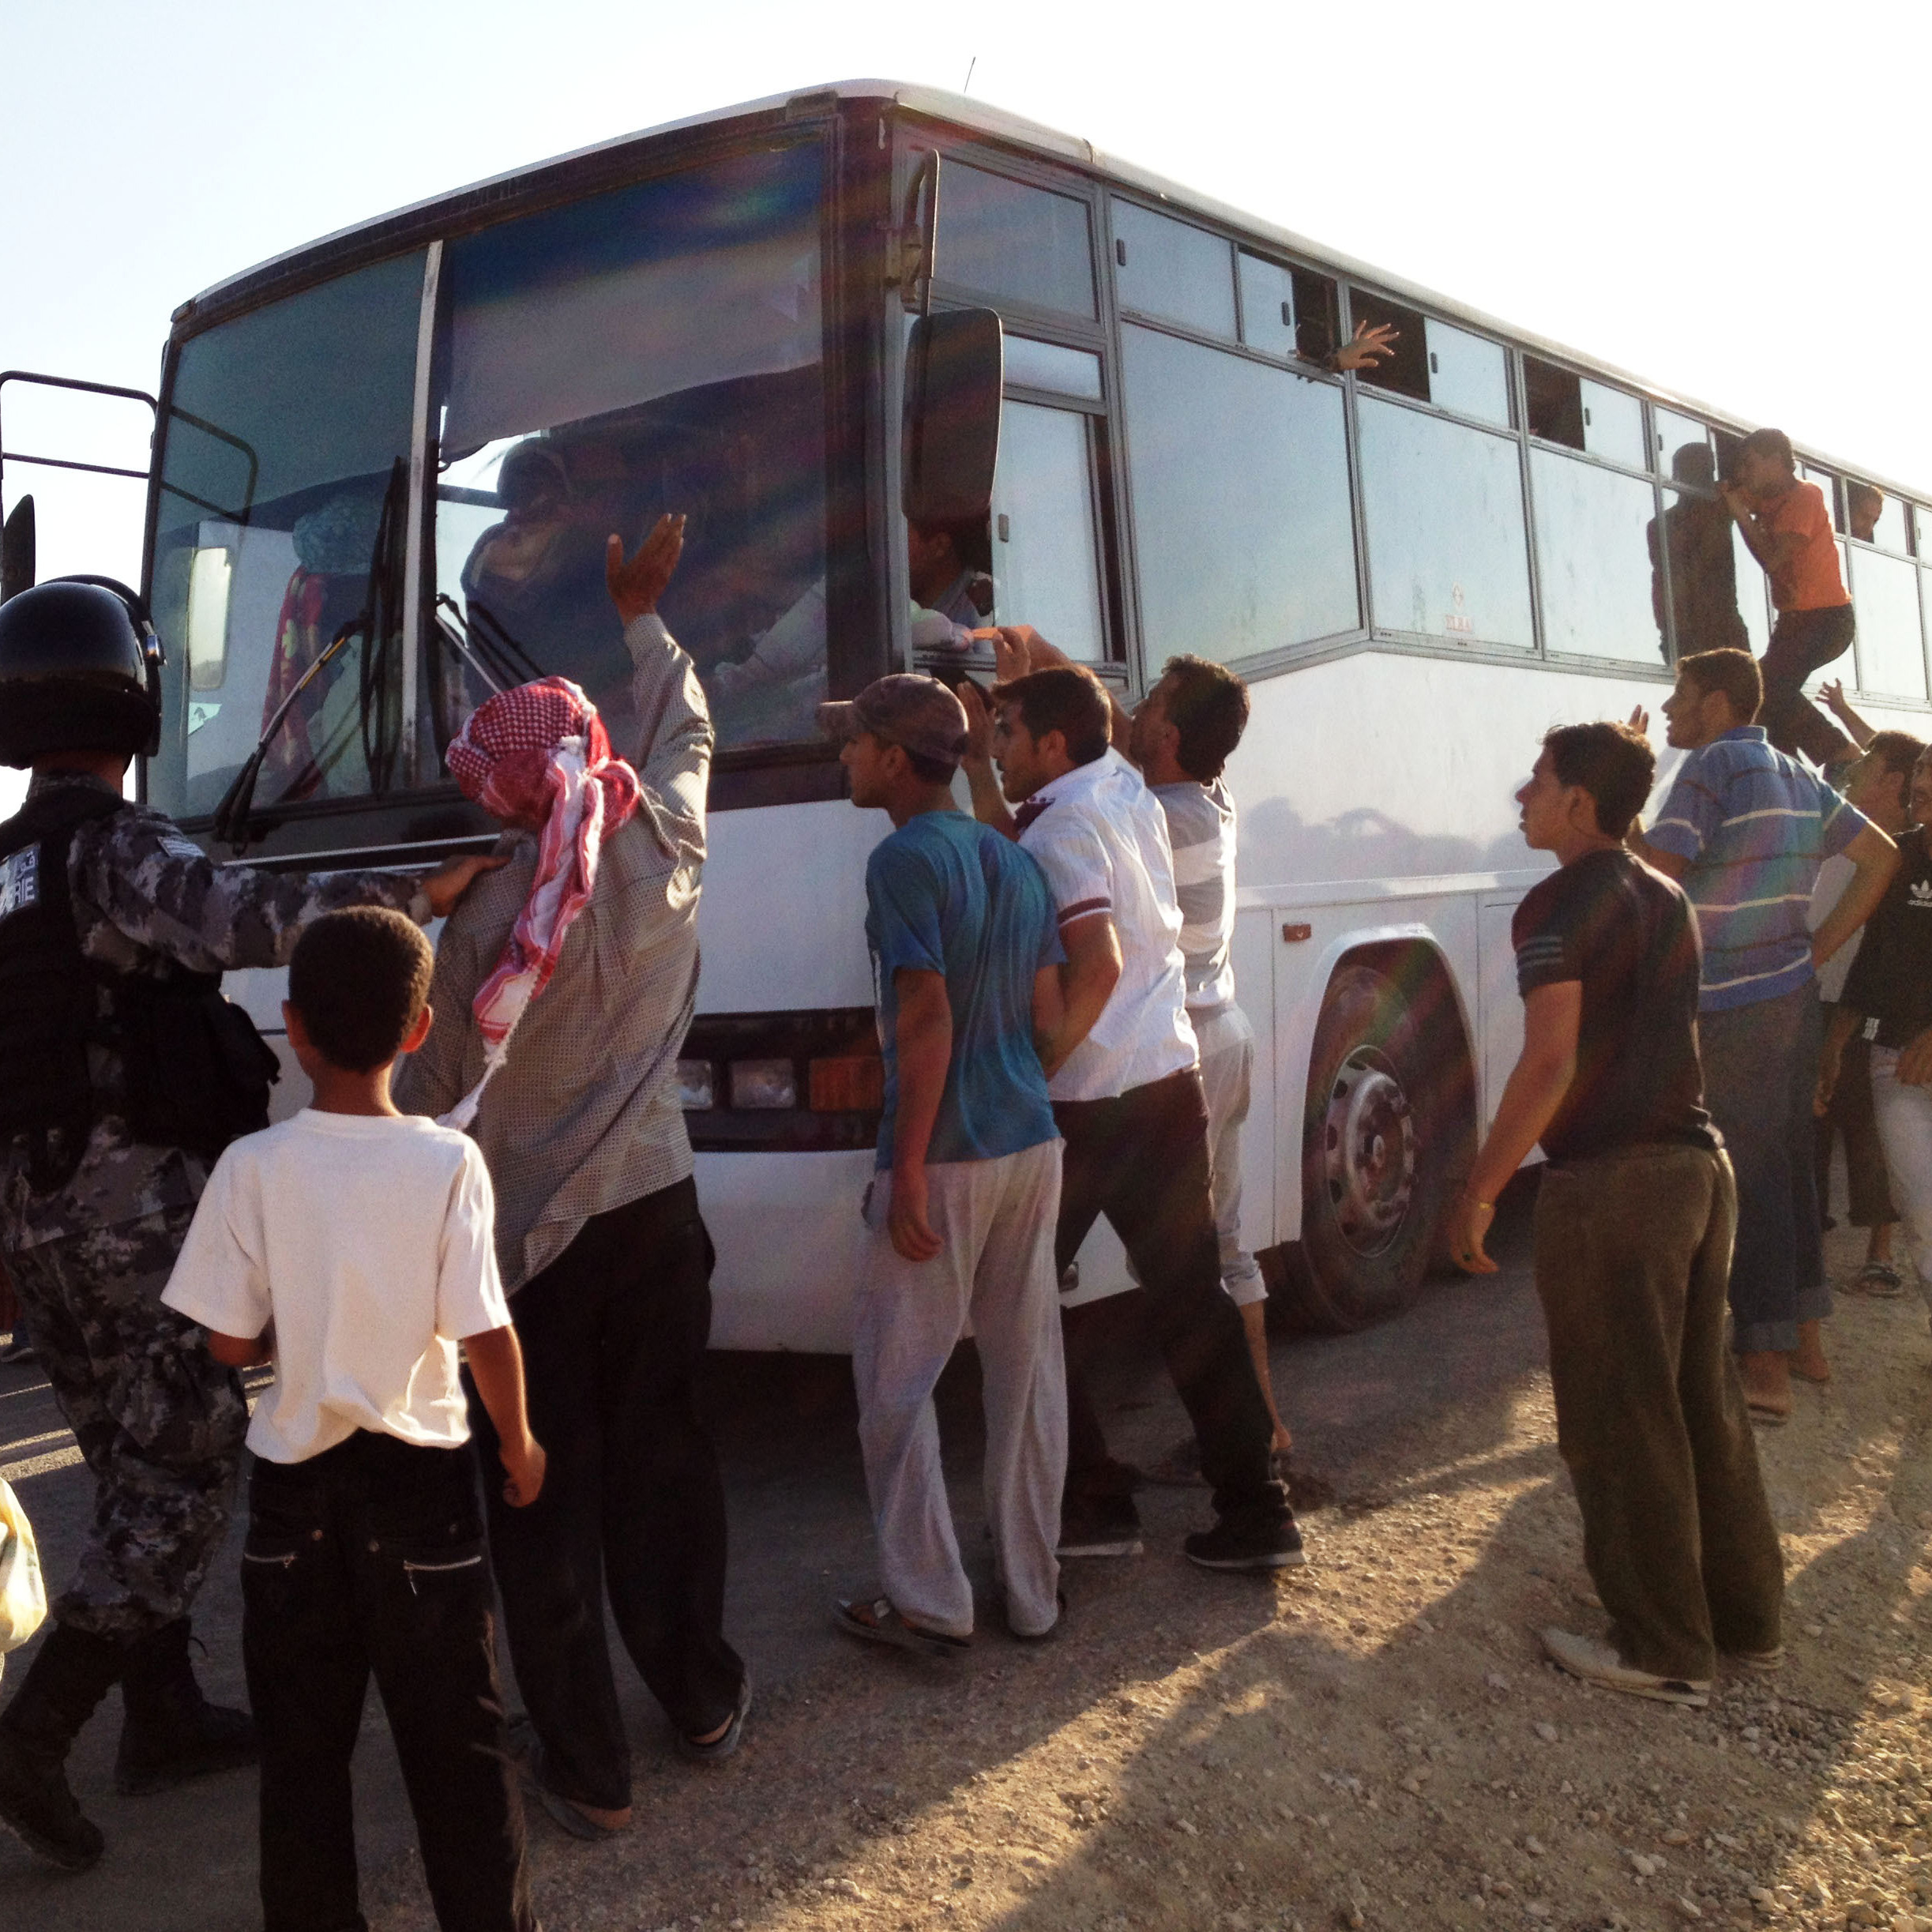 After flooding into Jordan for the past two years, some Syrian refugees are now heading home even though the country's civil war is still raging. Here, Syrian refugees board a bus for home at the Zaatari refugee camp in Jordan.